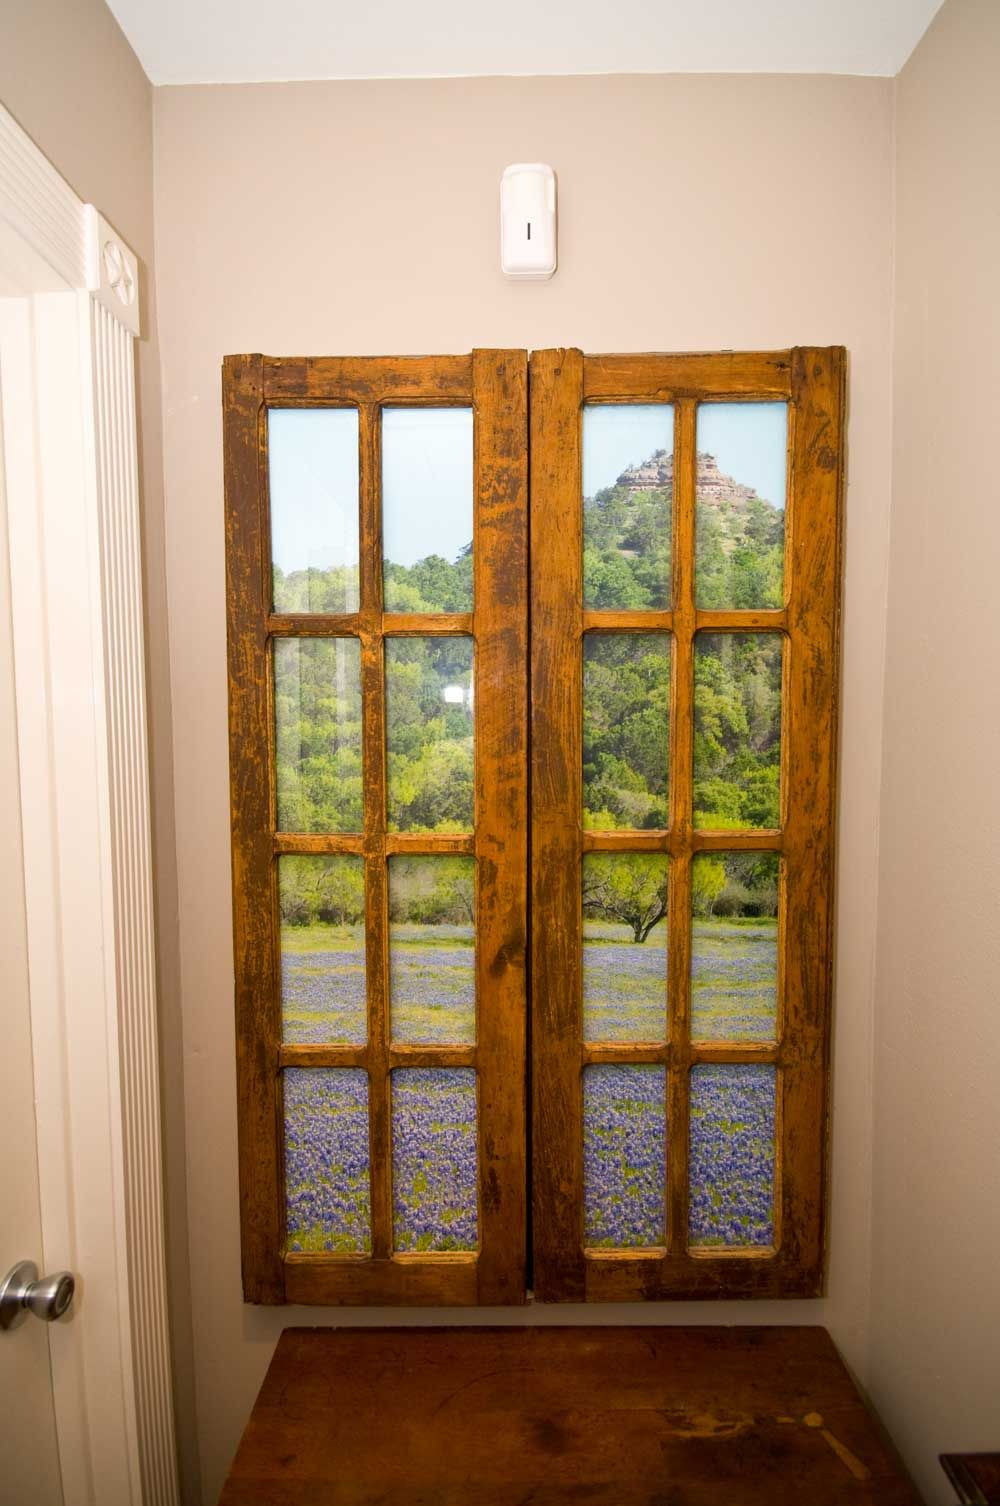 Faux Windows For Windowless Rooms | Faux Window Pictures In Faux Window Wood Wall Mirrors (View 12 of 30)